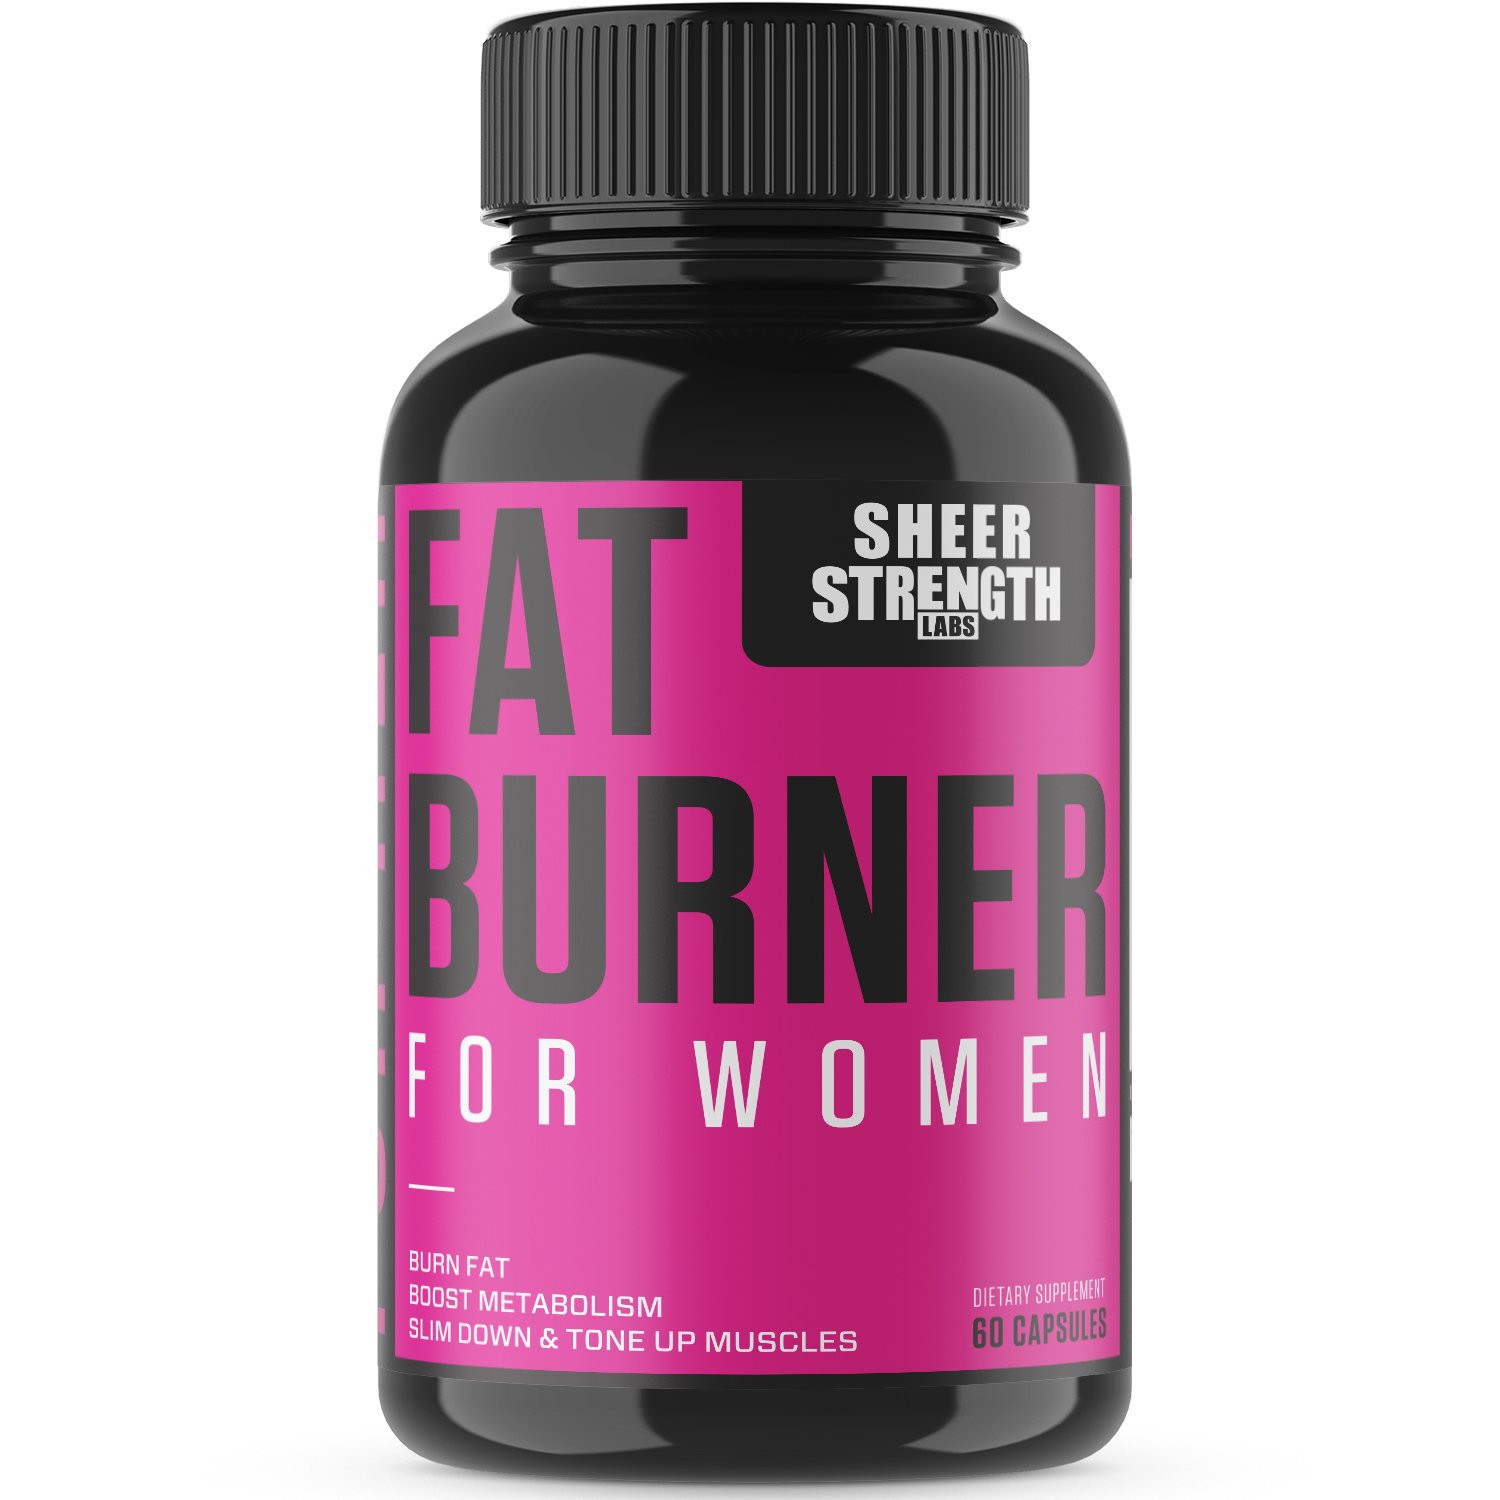 Weight Loss Supplements For Women Fat Burning  Best Natural Fat Burners Weight Loss Supplements List